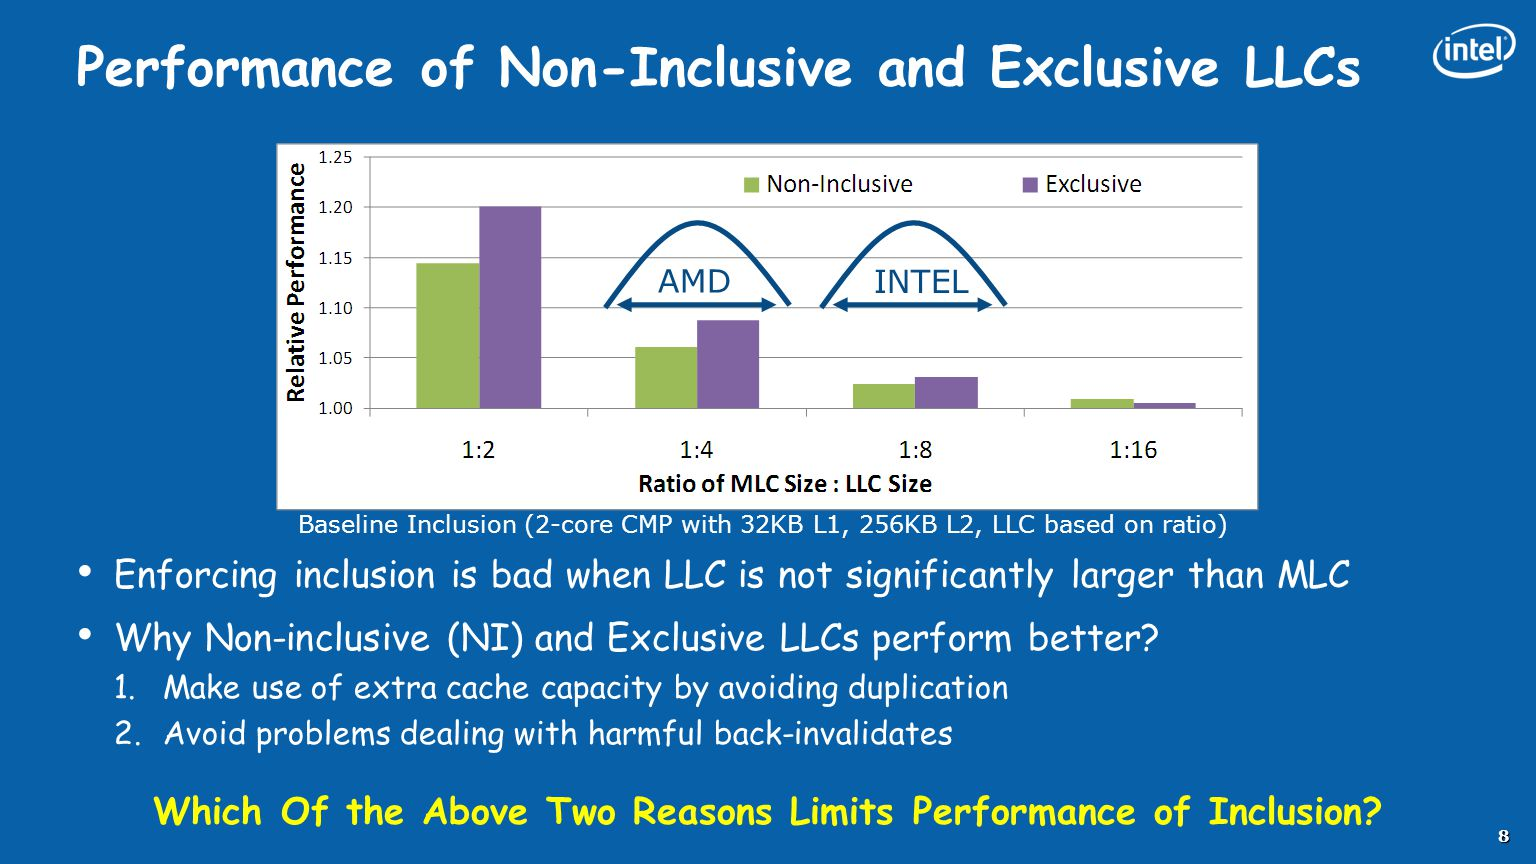 Performance of L2 Temporal Locality Hints L2 hints bridge <50% of gap between inclusion & non-inclusion Limitations of L2 Hints: Not as good as L1 hints High BW num messages = num L2 hits 29 2T Workloads on a 1:4 Hierarchy *Our studies do not model TLH BW Need Low Bandwidth Alternative to L1 Temporal Locality Hints 2.8% 6.1% Baseline Inclusion